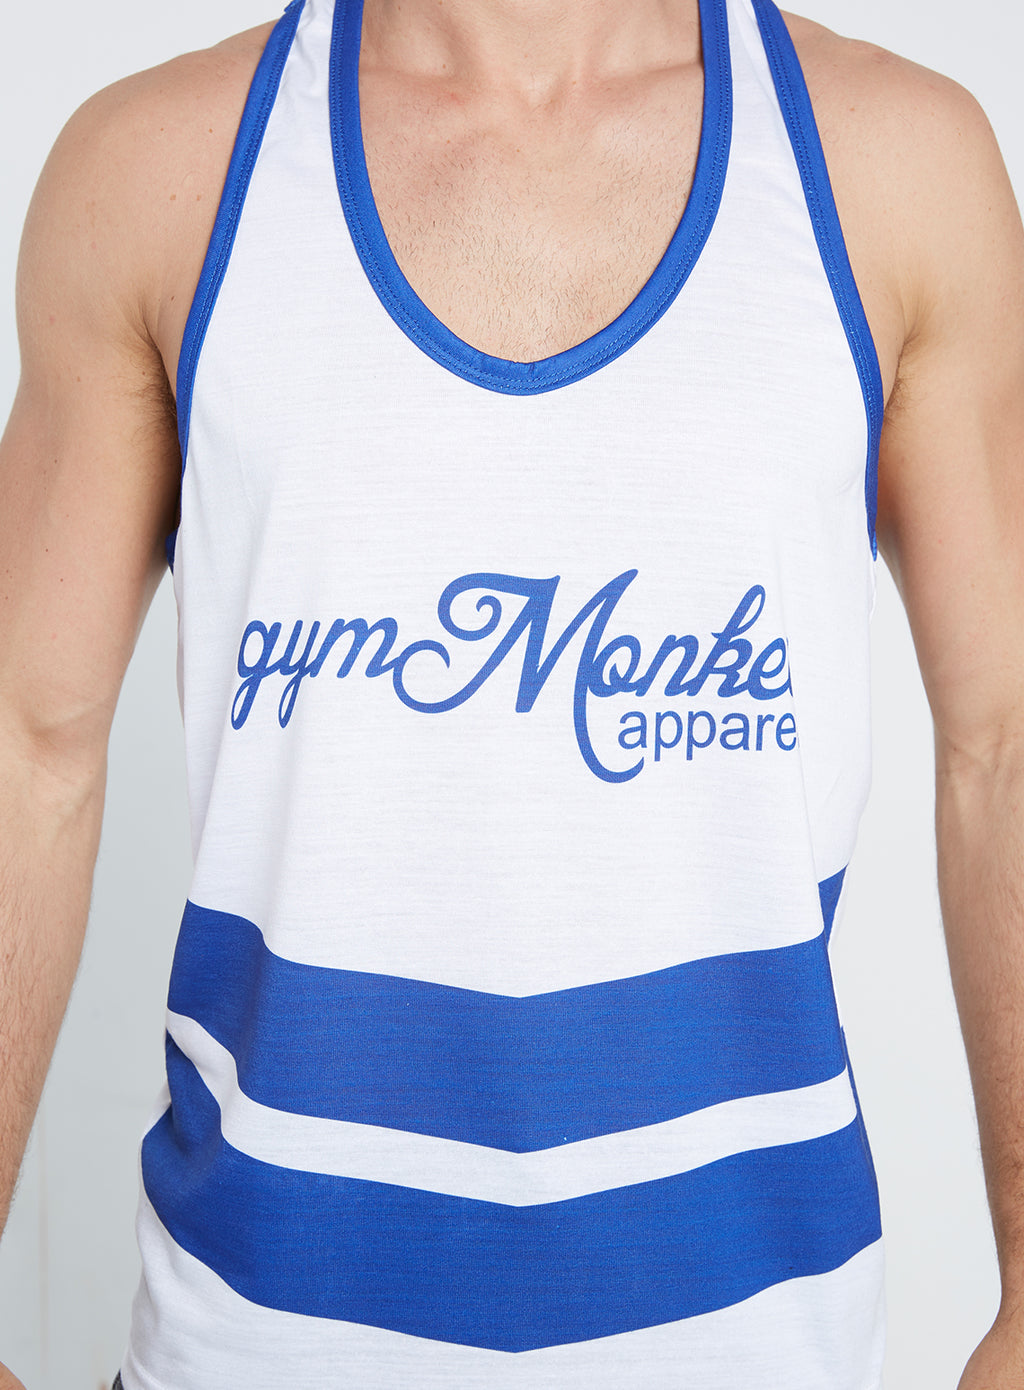 Gym Monkee - Blue and White Sublimated Vest CHEST